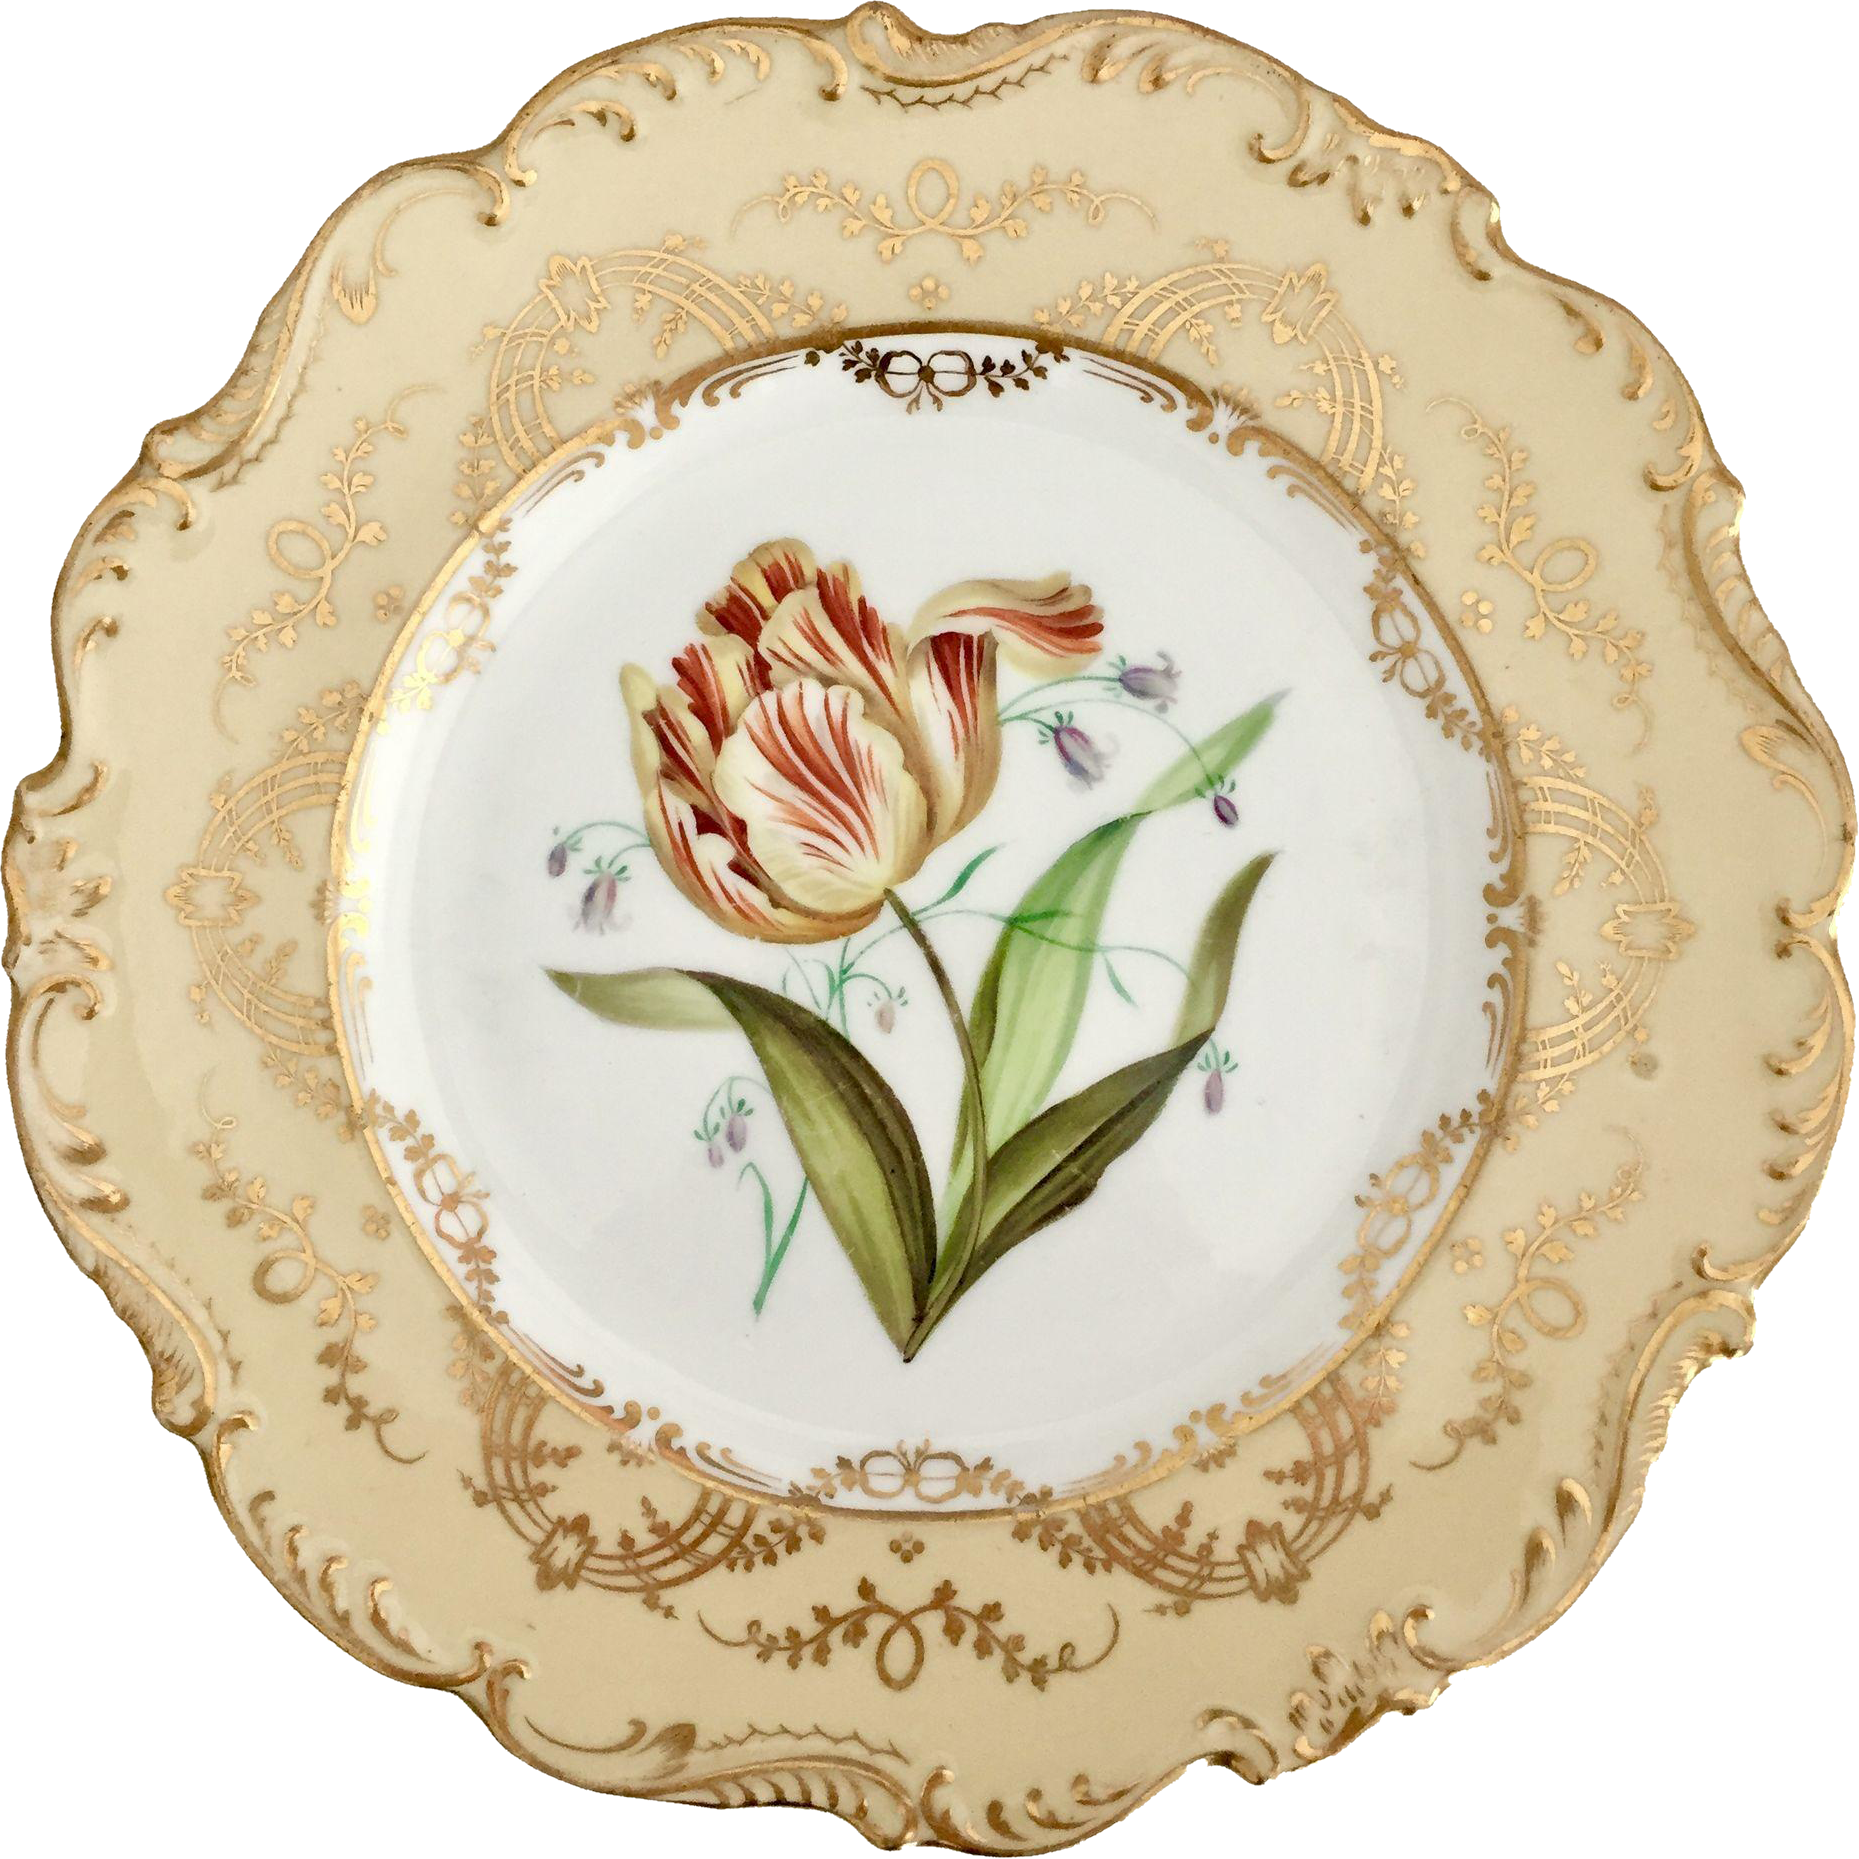 Ridgway dinner sublime botanical. Plate clipart plate china